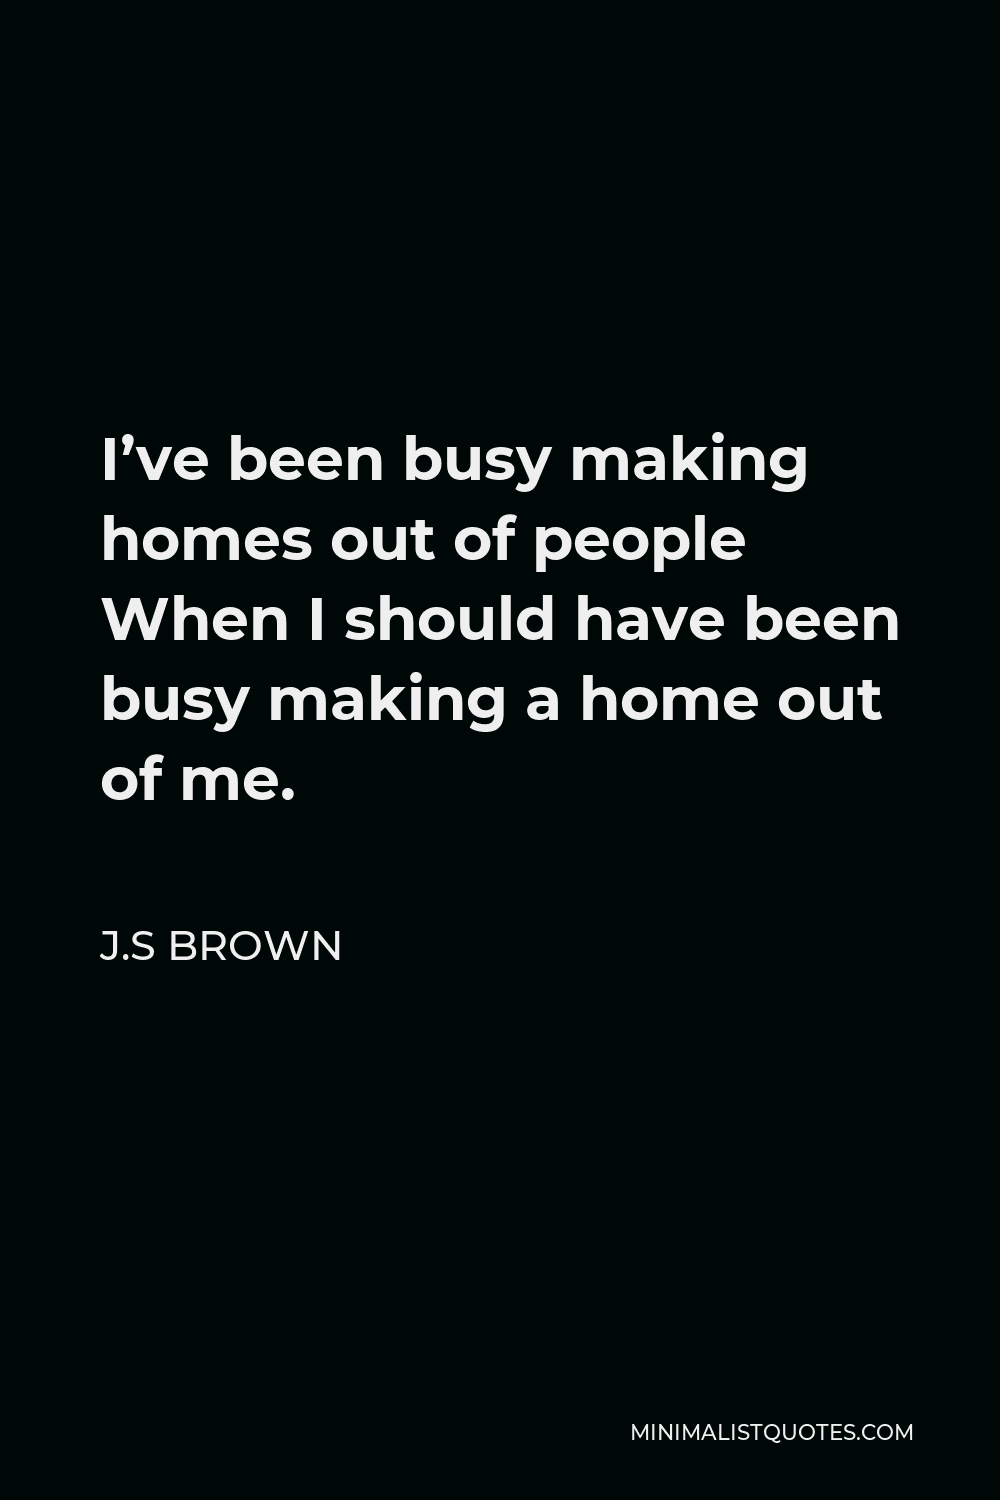 J.S Brown Quote - I've been busy making homes out of people When I should have been busy making a home out of me.